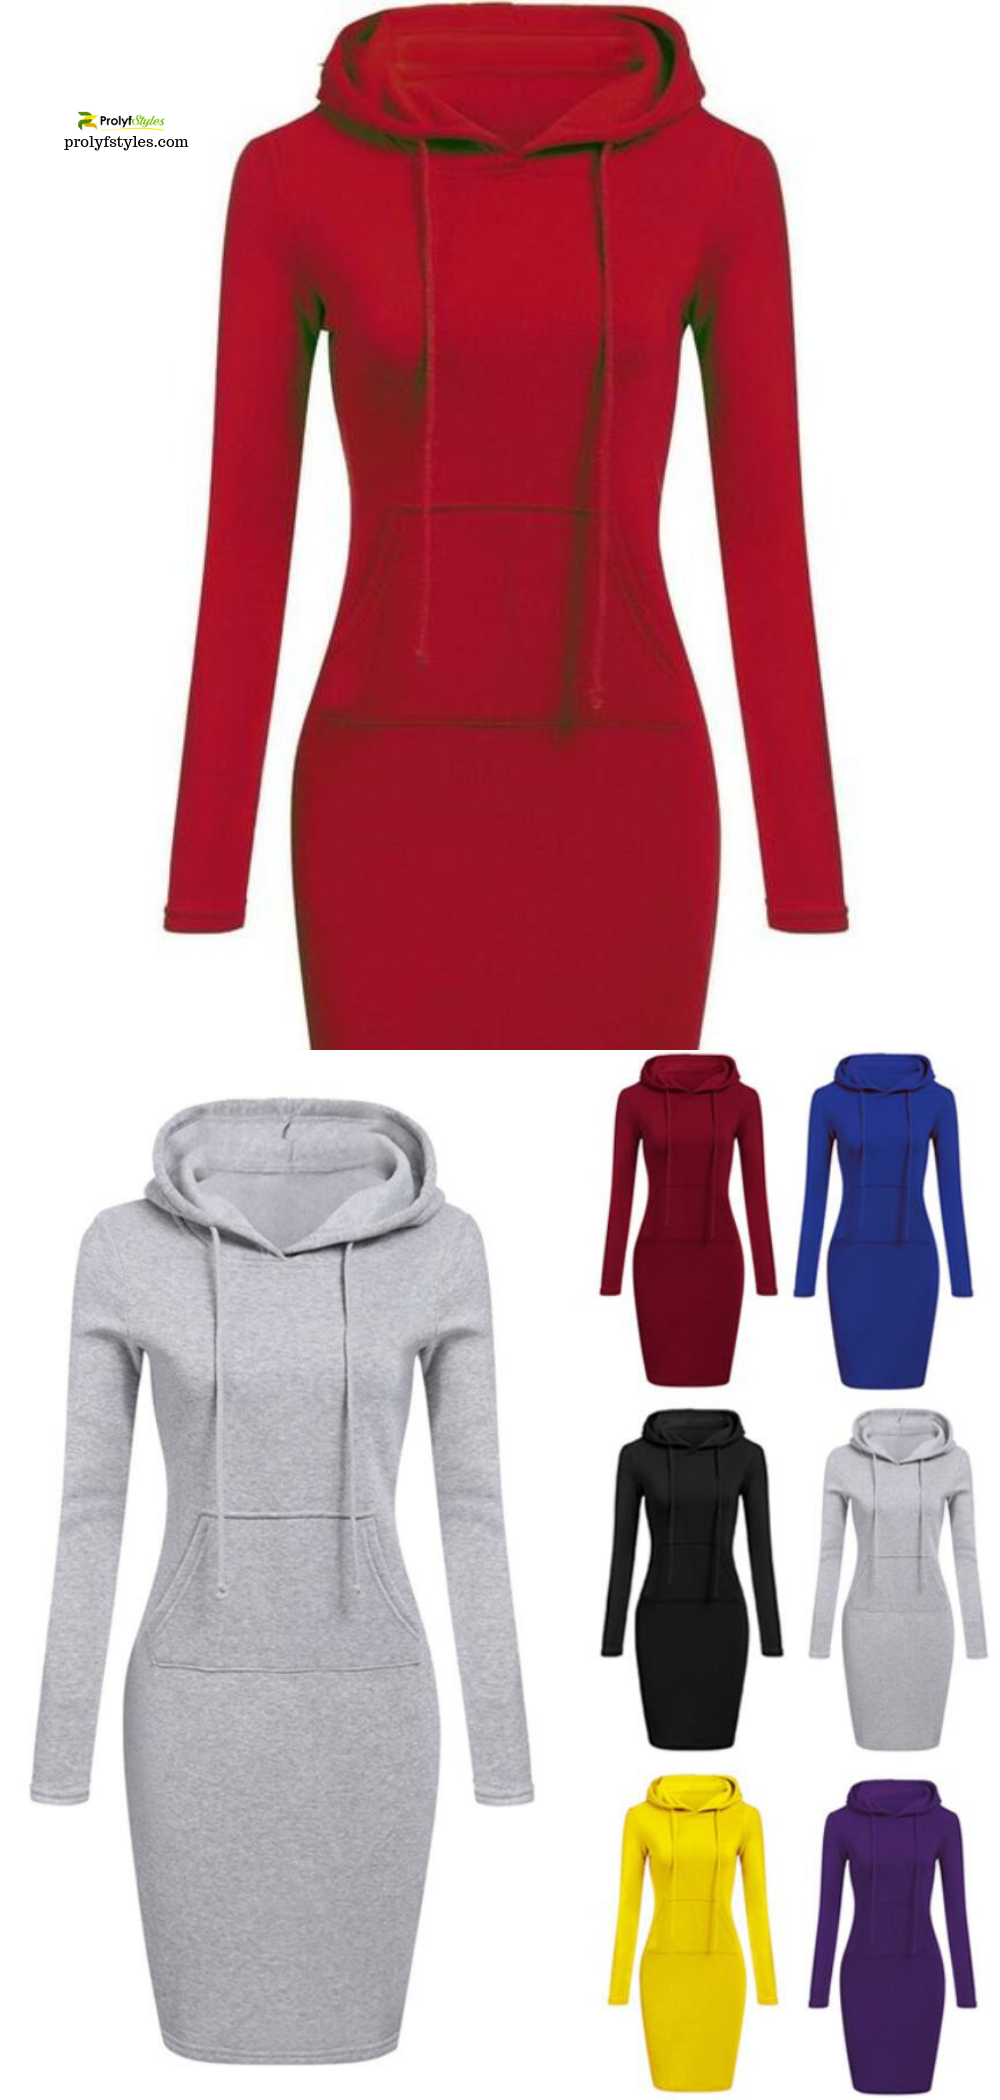 Shop Long Sleeve Hoodie Dress Online From Prolyfstyles Com Casual Day Dresses Casual Pullover Outfit Hoodie Dress [ 2100 x 1000 Pixel ]